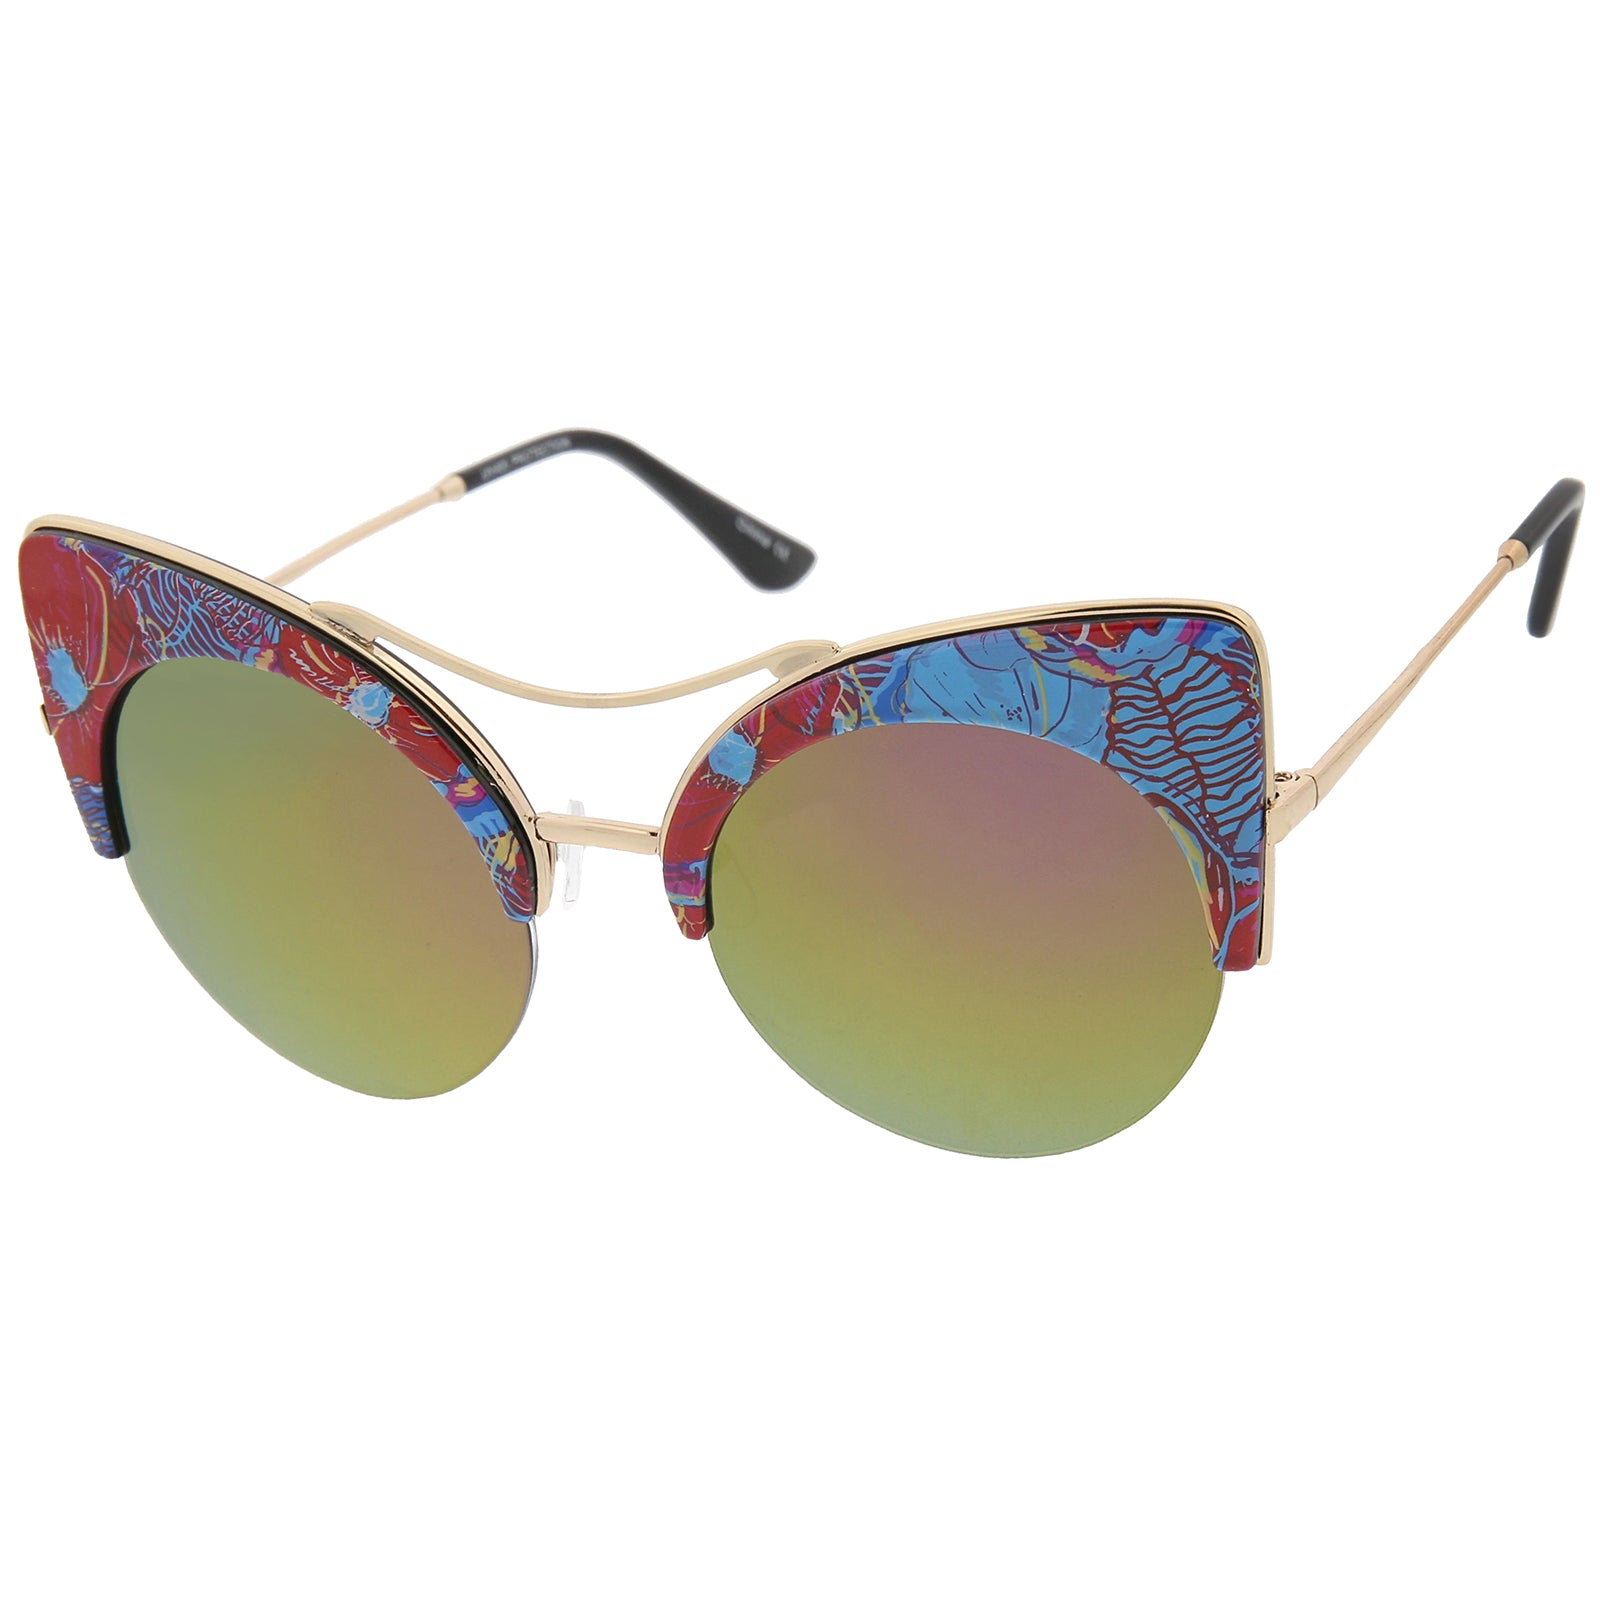 Women's Flat Lens Floral Print Semi-Rimless Round Cat Eye Sunglasses 52mm - sunglass.la - 2